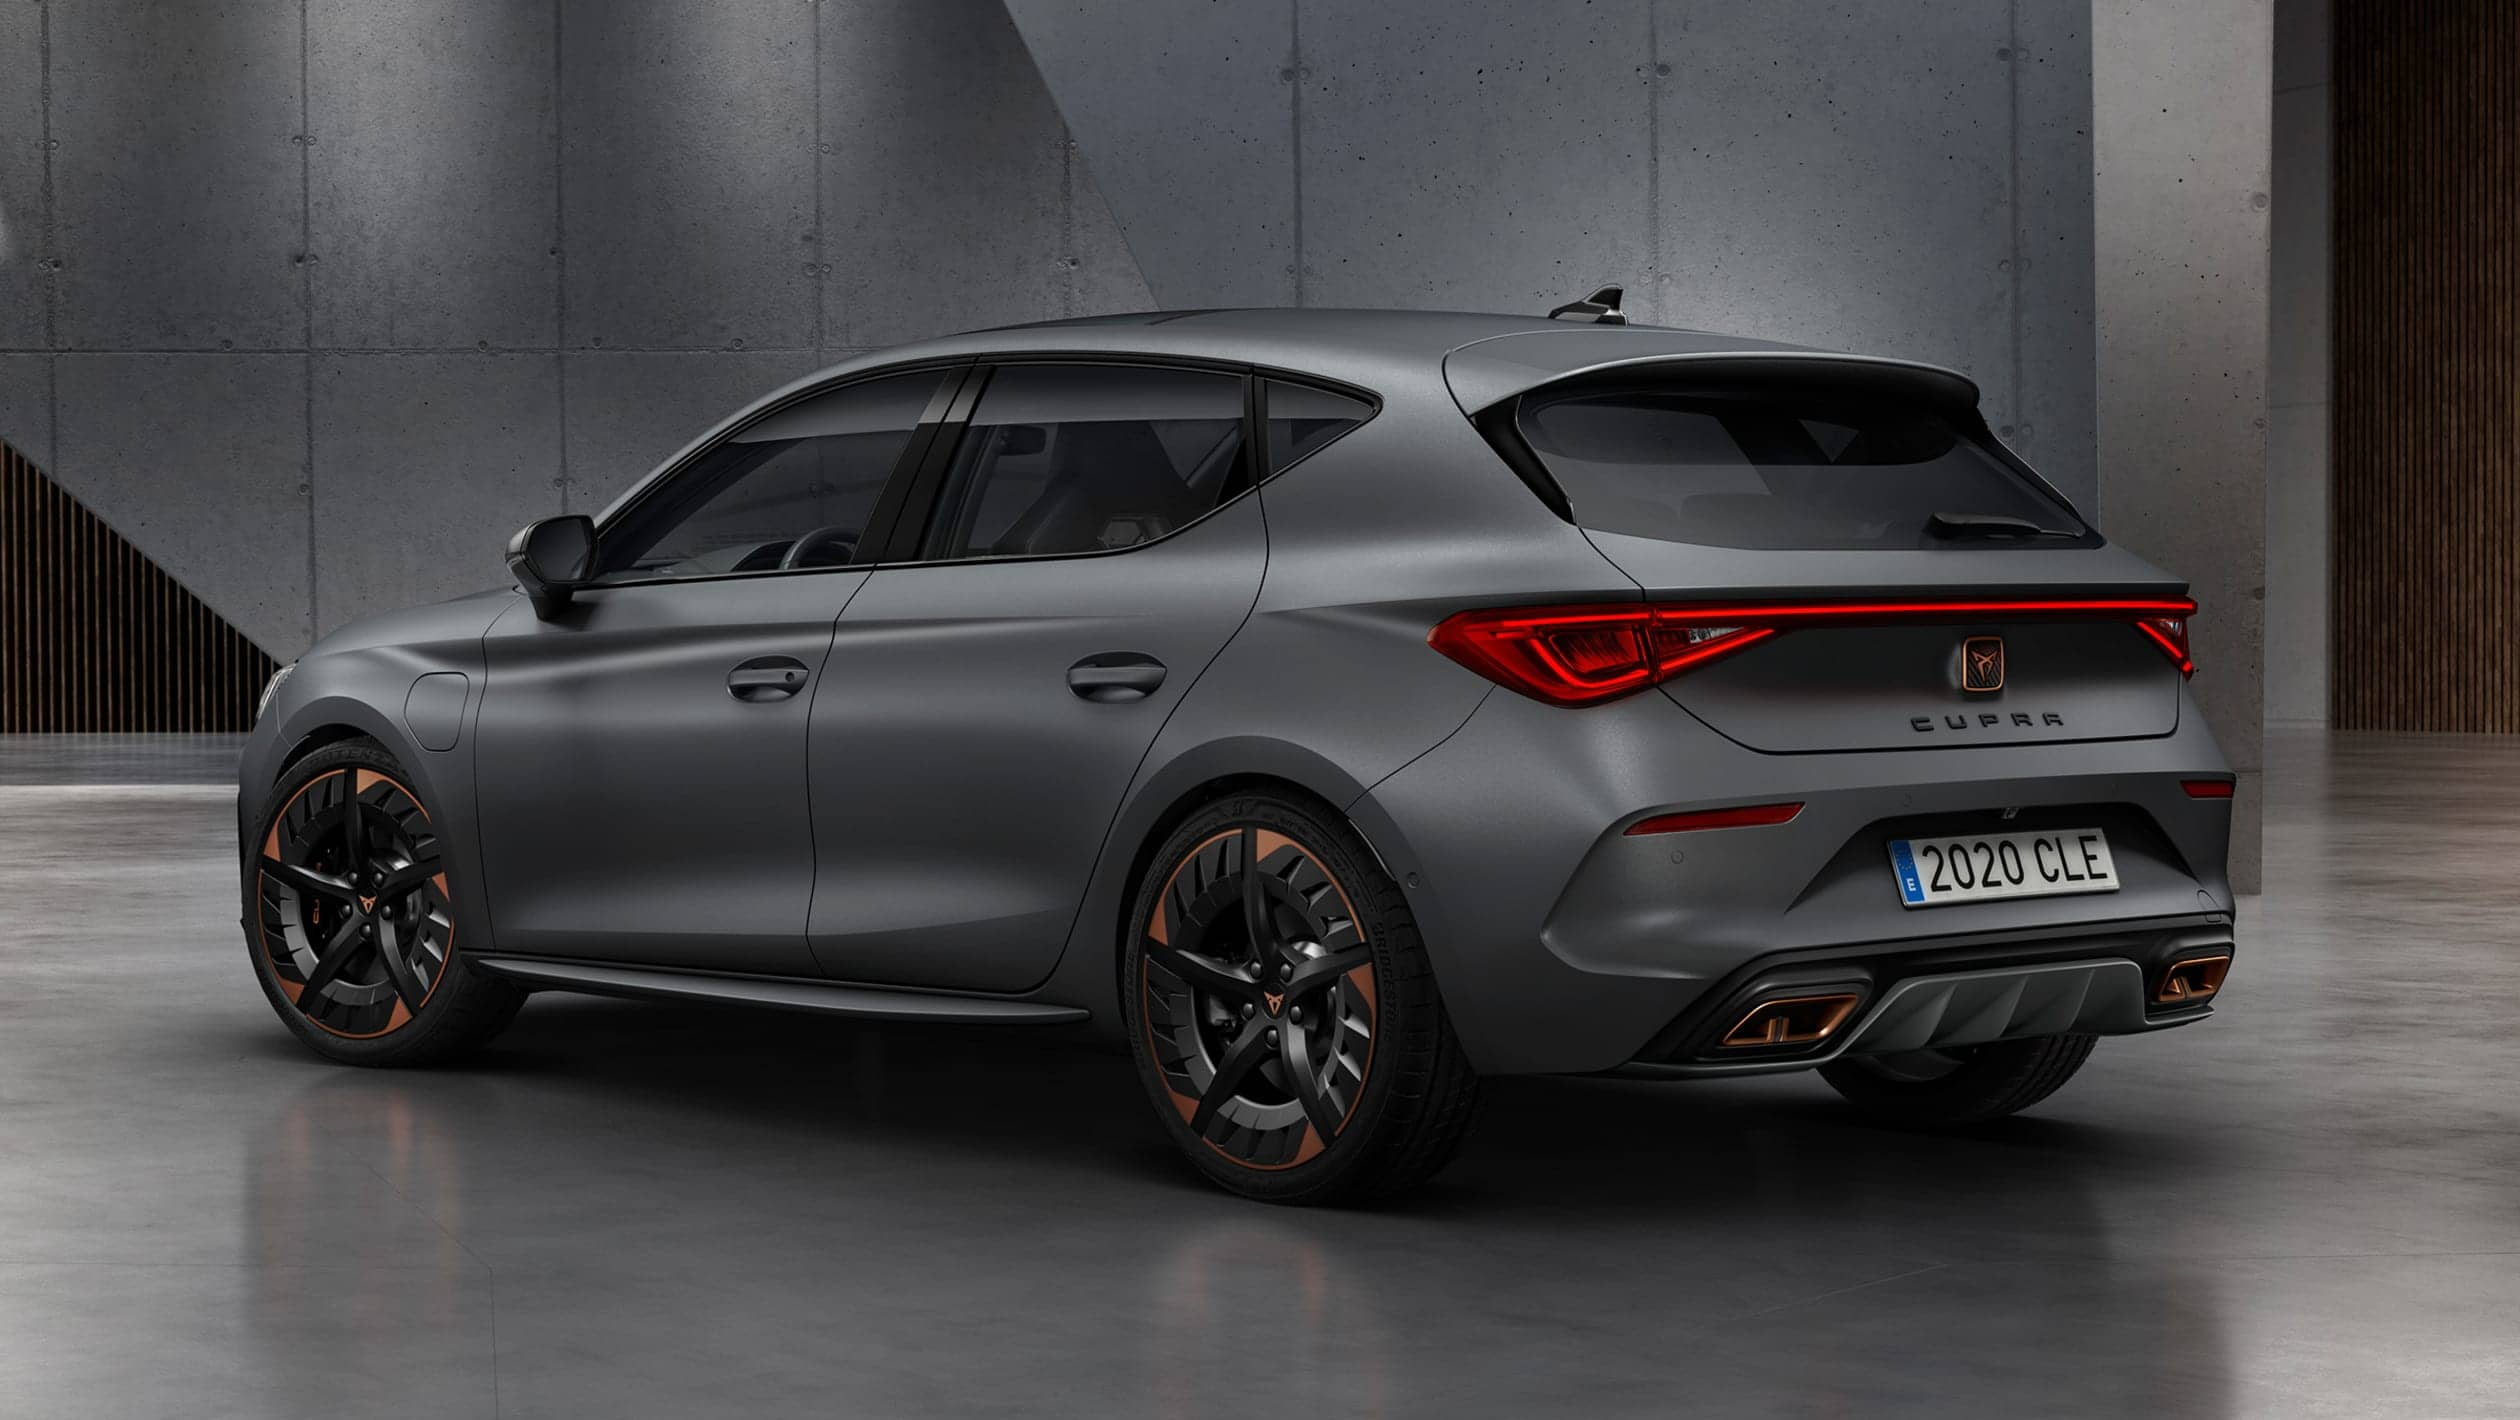 cupra_5d_phev_34_rear